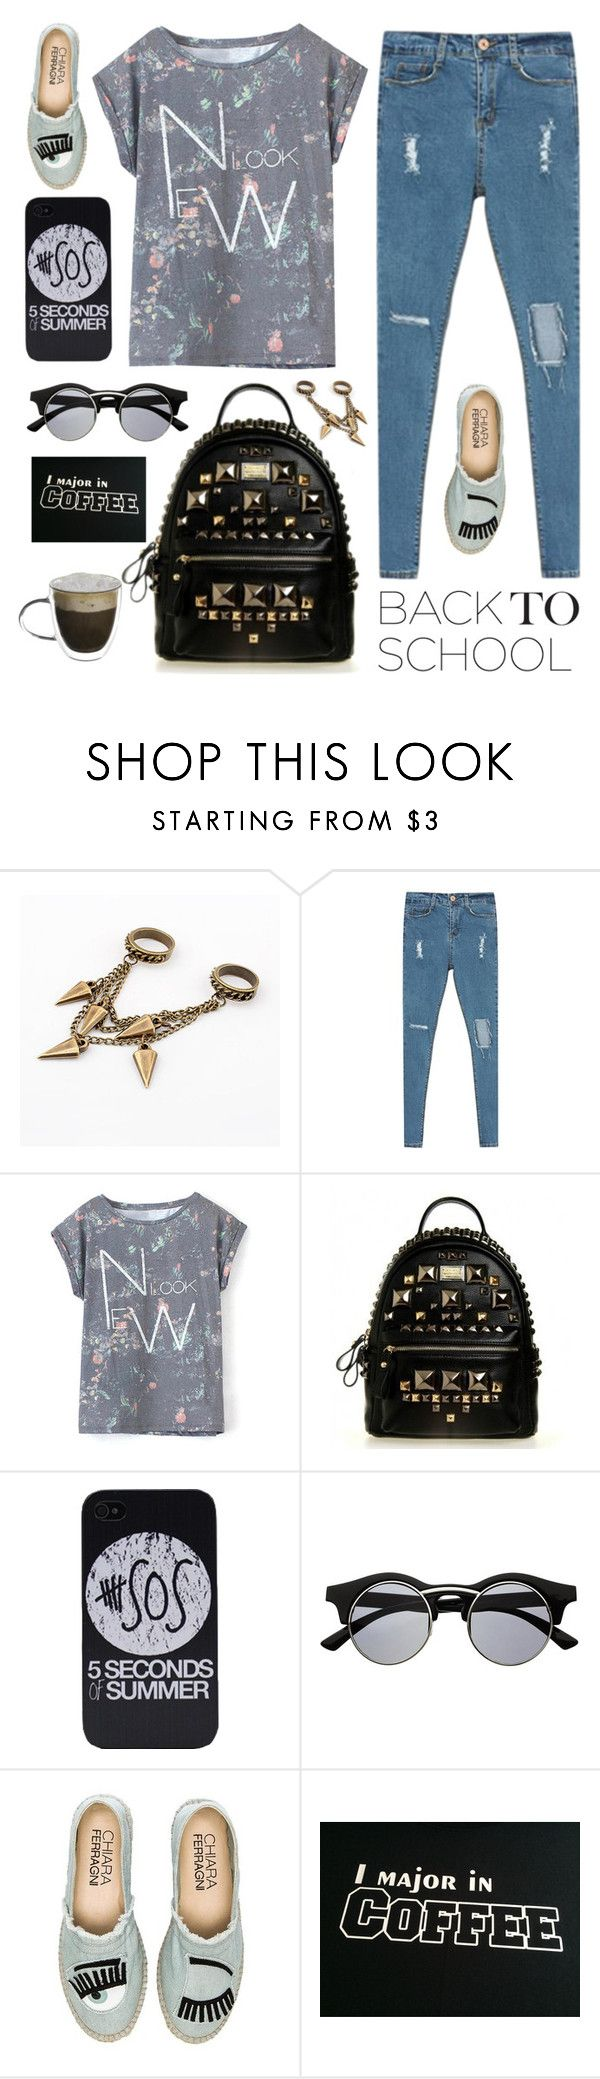 """The First Day of School"" by dora04 ❤ liked on Polyvore featuring Retrò, Chiara Ferragni, BackToSchool and stylemoi"